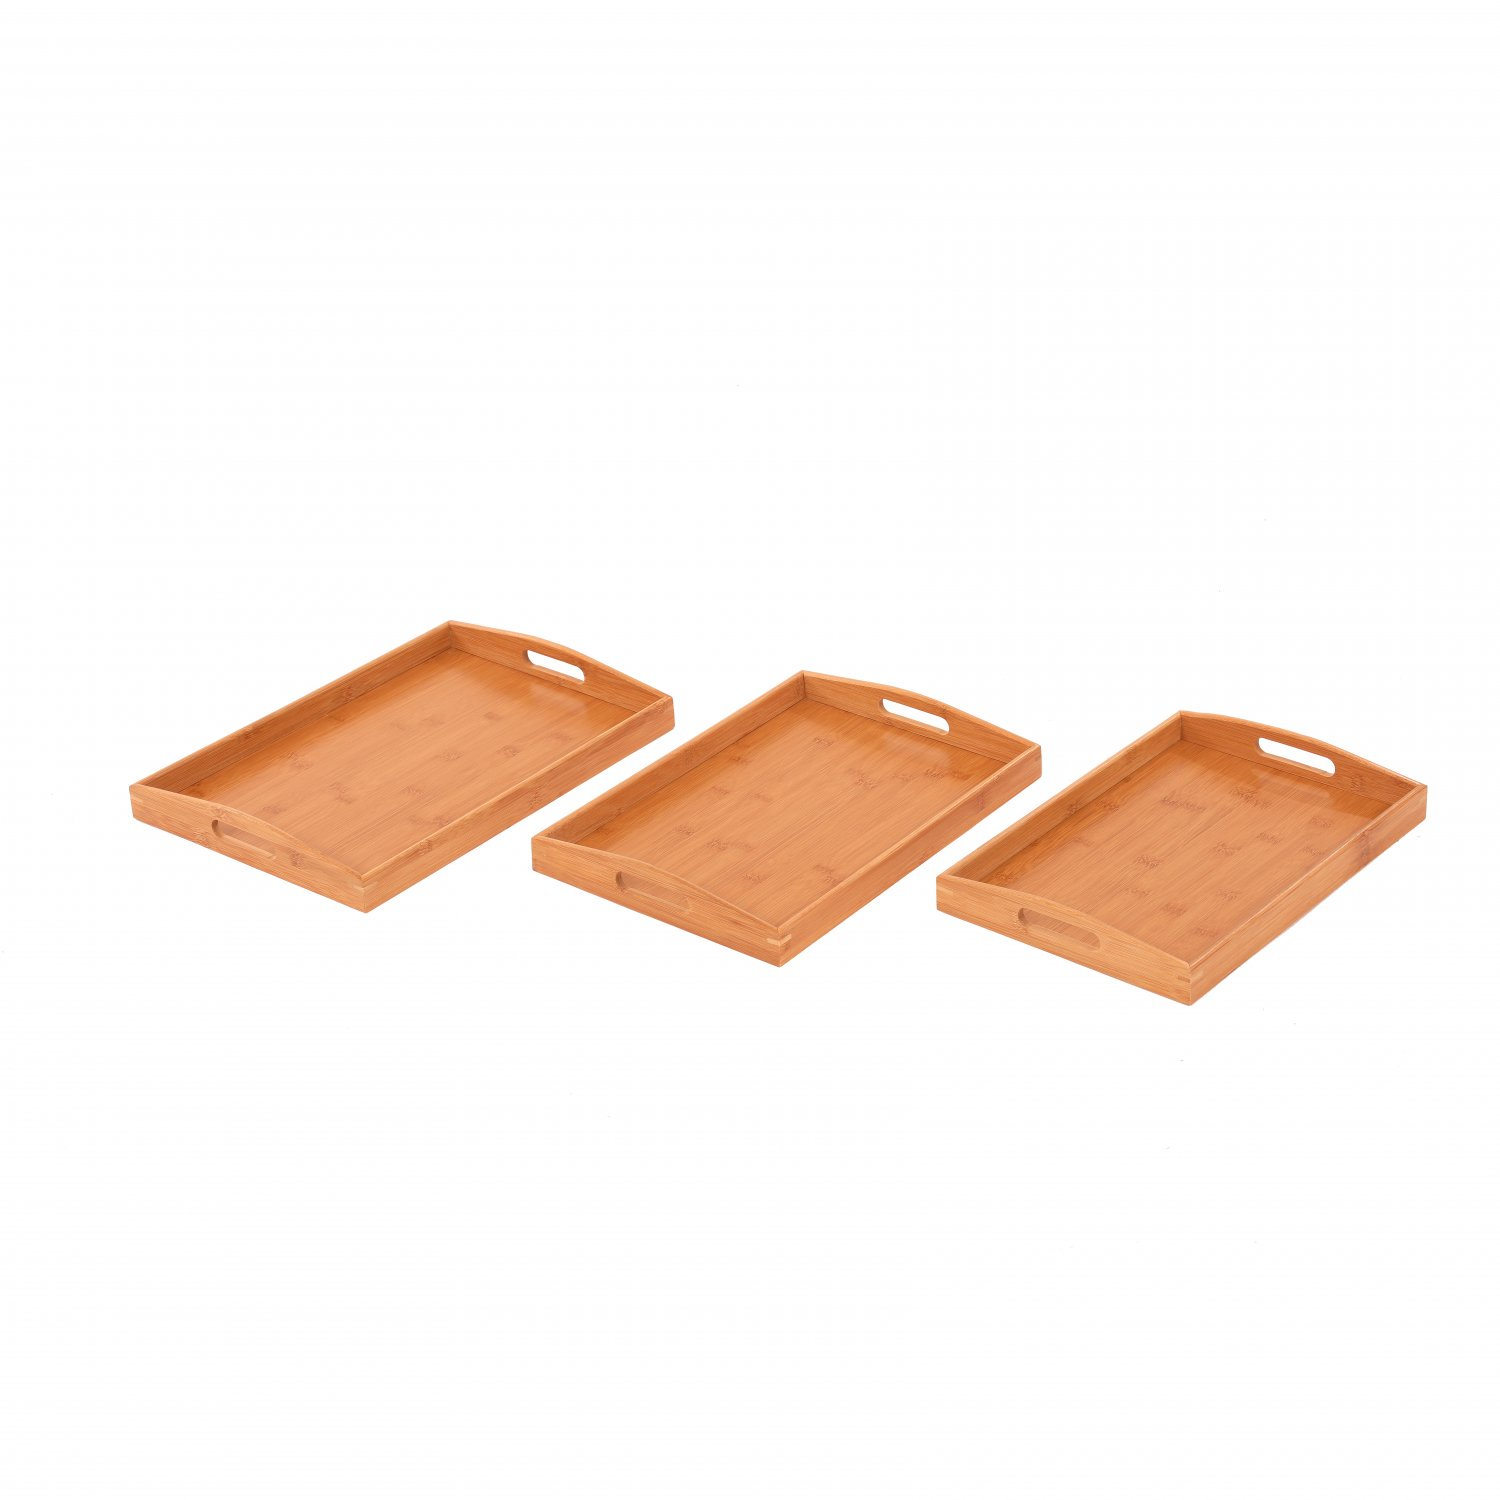 Set of 3 Wooden Bamboo Breakfast Serving Trays Platters